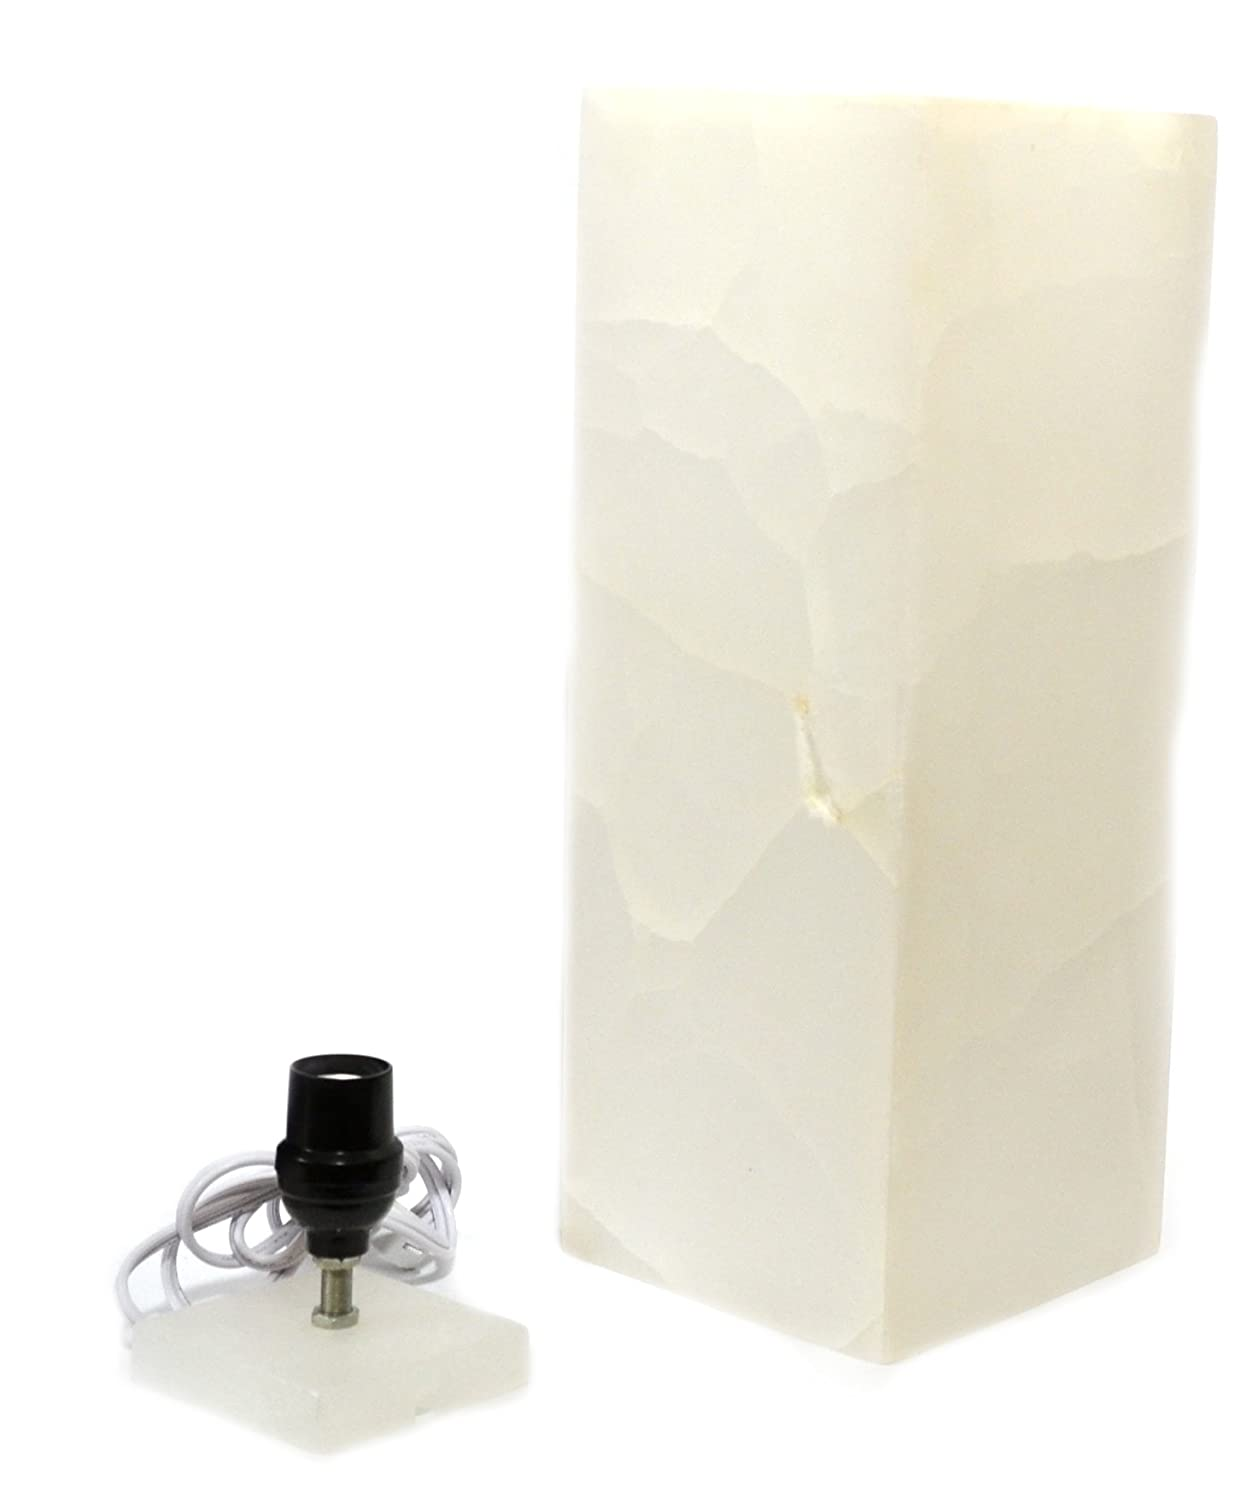 16 Tall The Artisan Mined Series by hBAR Pearlescent White Stone Prism Lamp Carved from Real North American Onyx